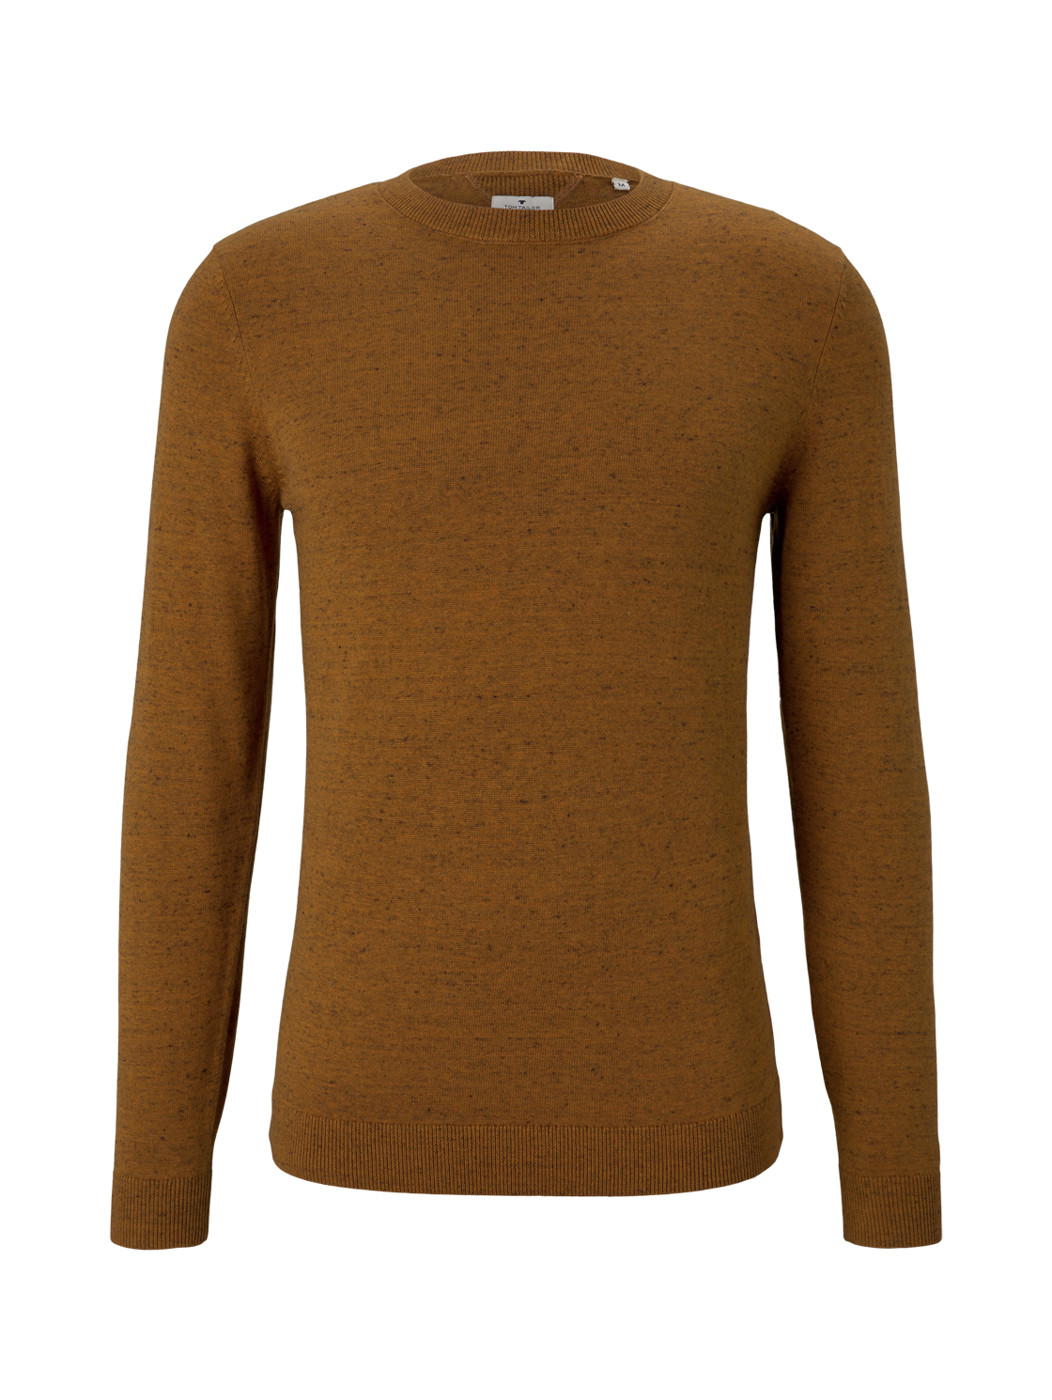 basic crew neck sweater - Herren